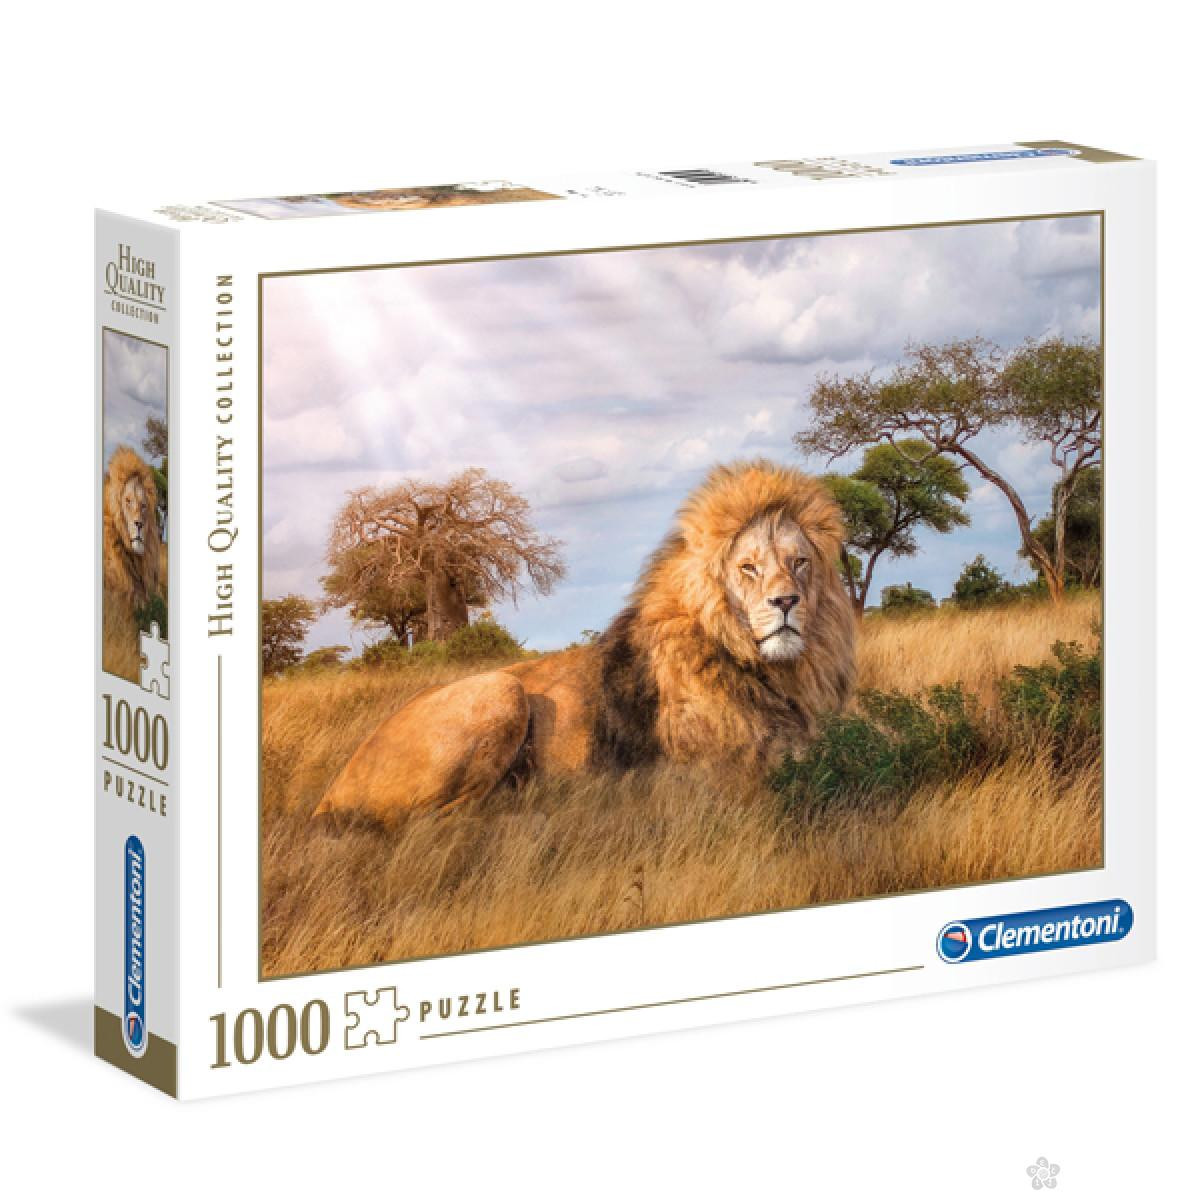 Clementoni puzzla The king, 1000pcs 39479